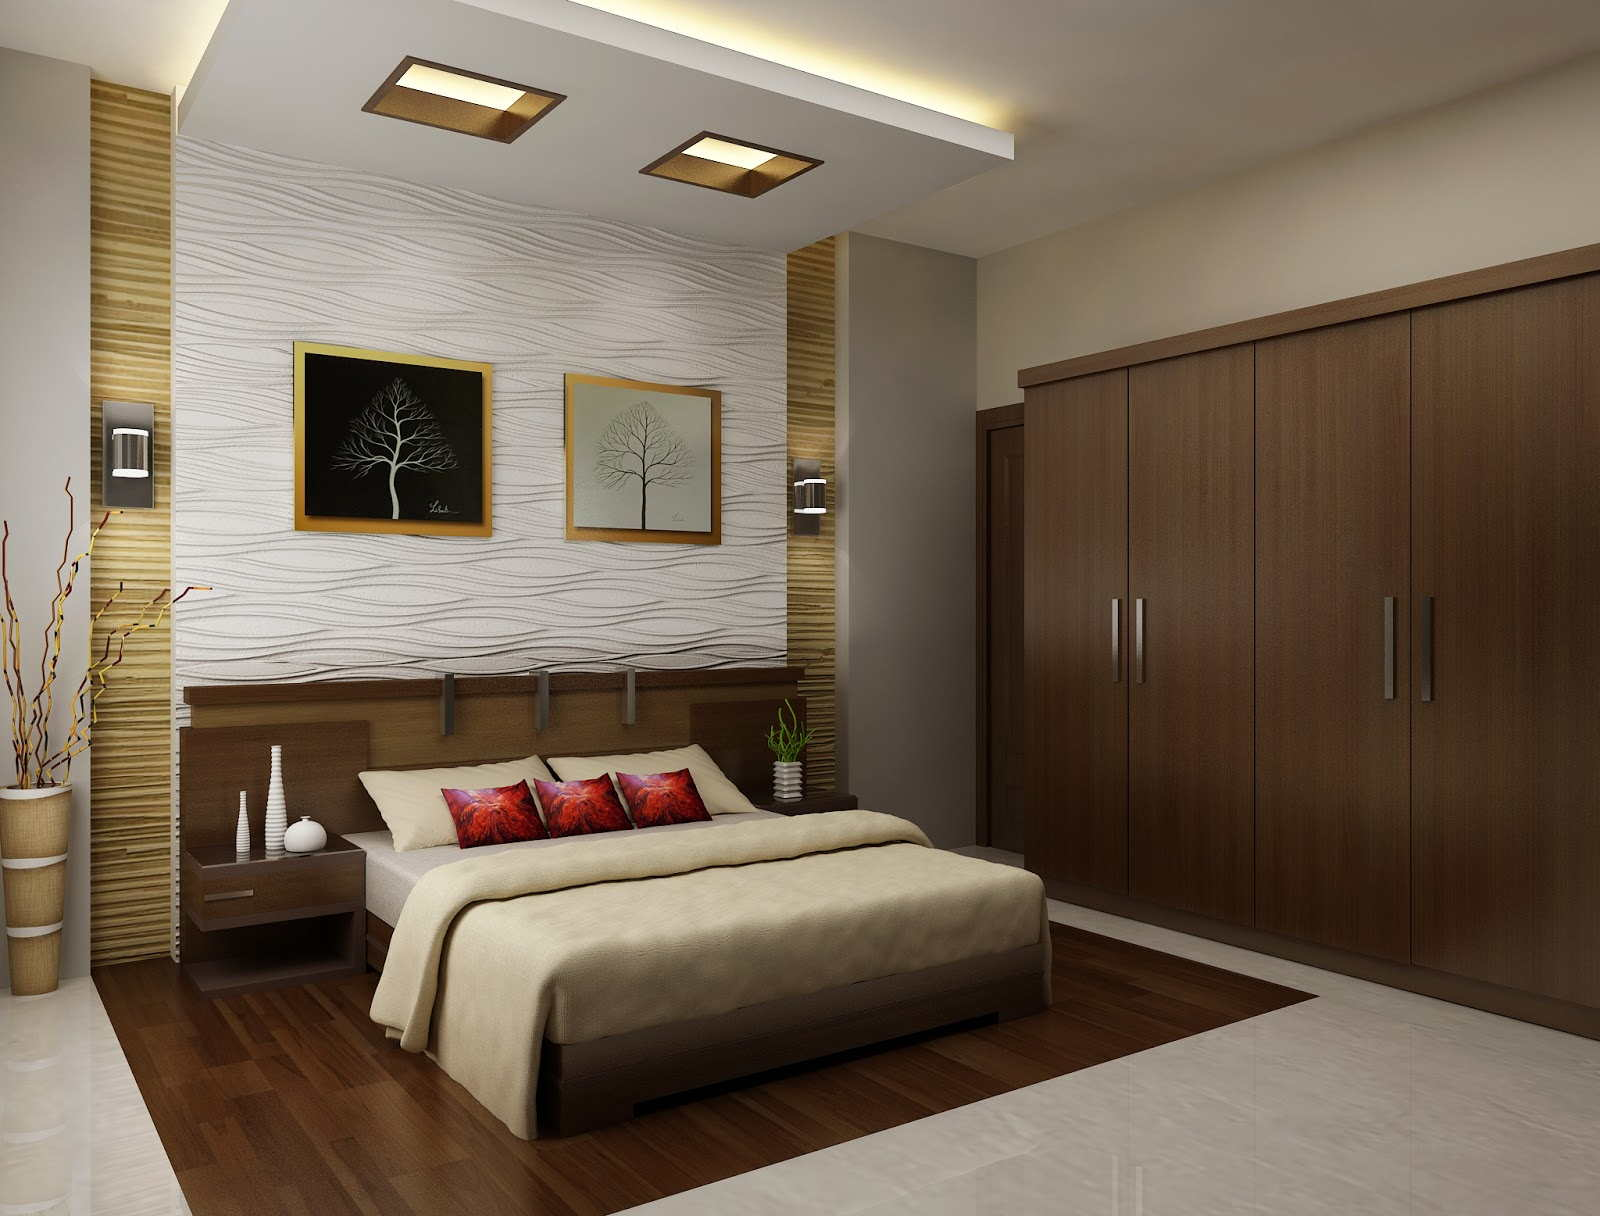 11 attractive bedroom design ideas that will make your - Home interior design ideas for small spaces ...